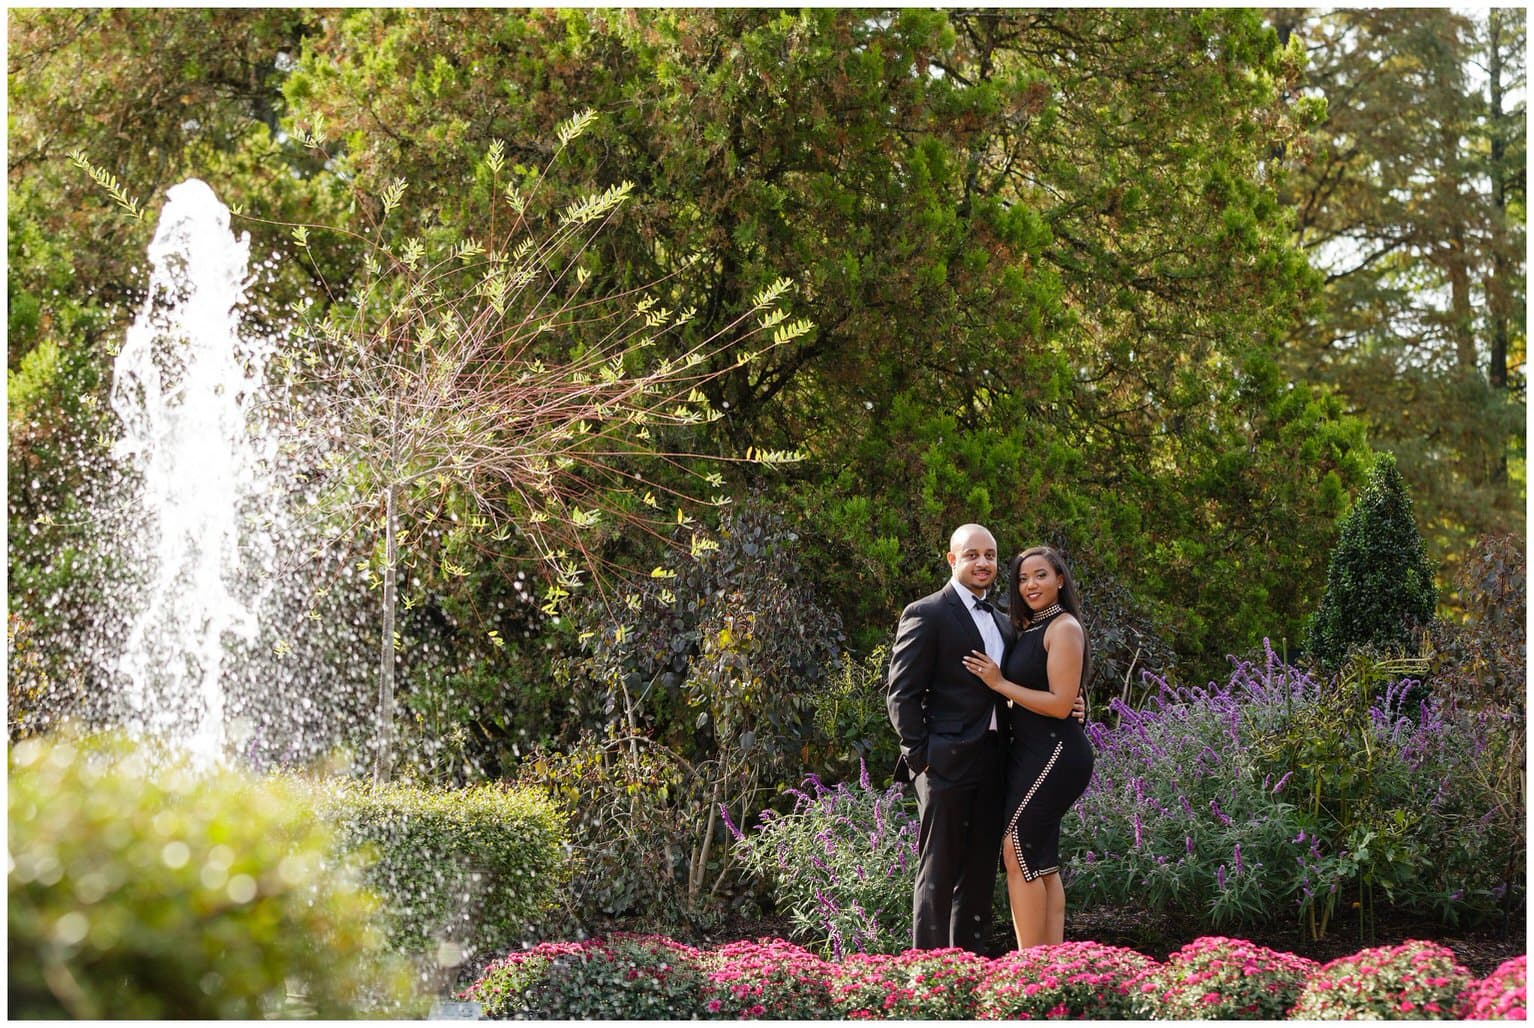 Longwood Gardens Engagement Session - Alexandra Clerie & Joey Alford